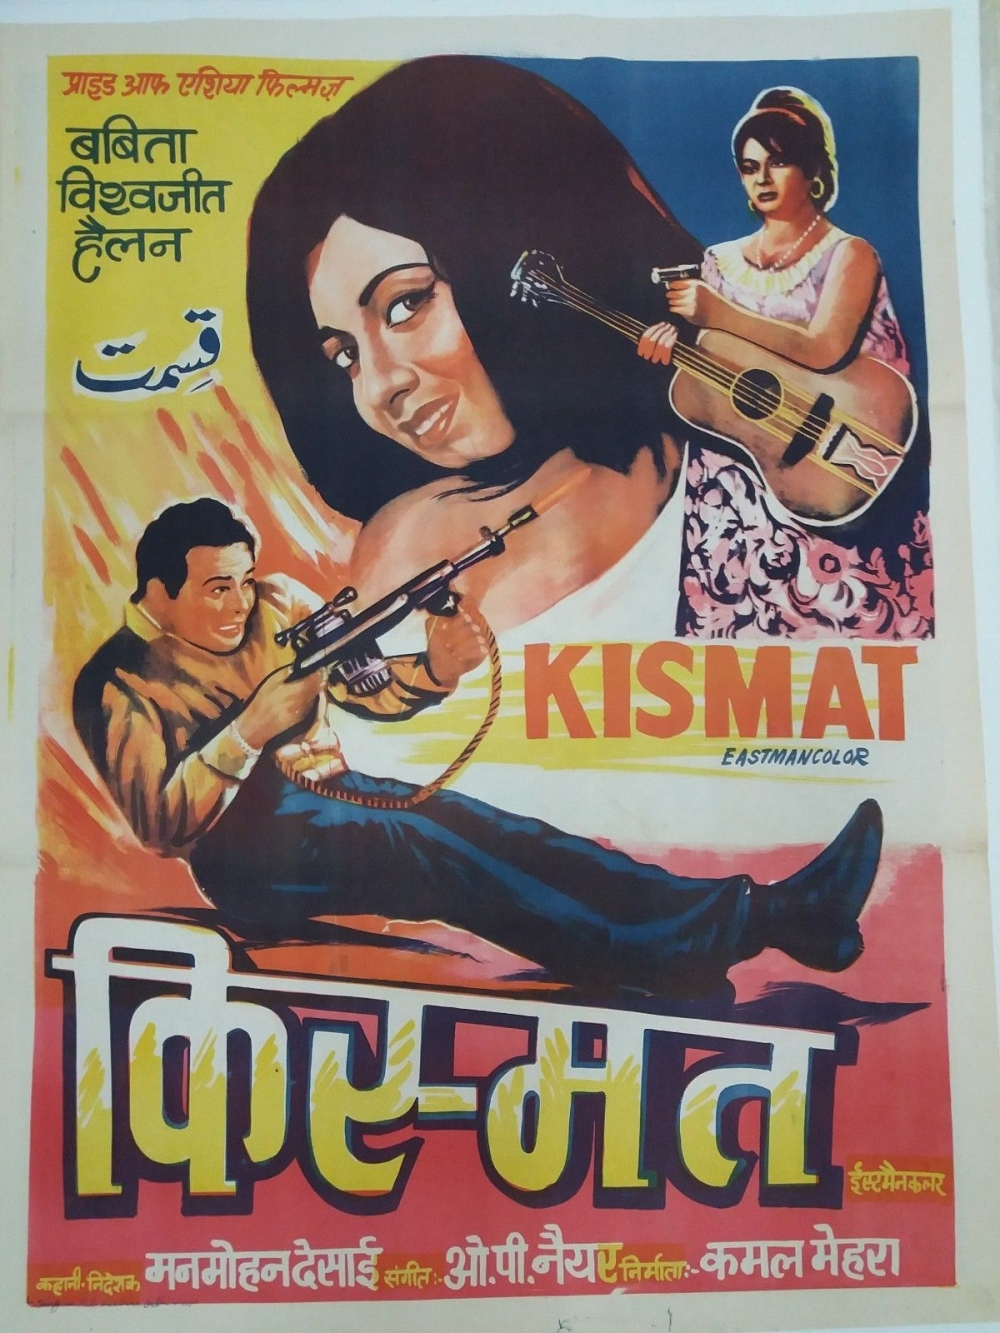 Fig. 9. Creatively used and manipulated in many cinema posters, like Kismat and Shikar (both released in 1968), the title shape draws immediate attention of the passerby